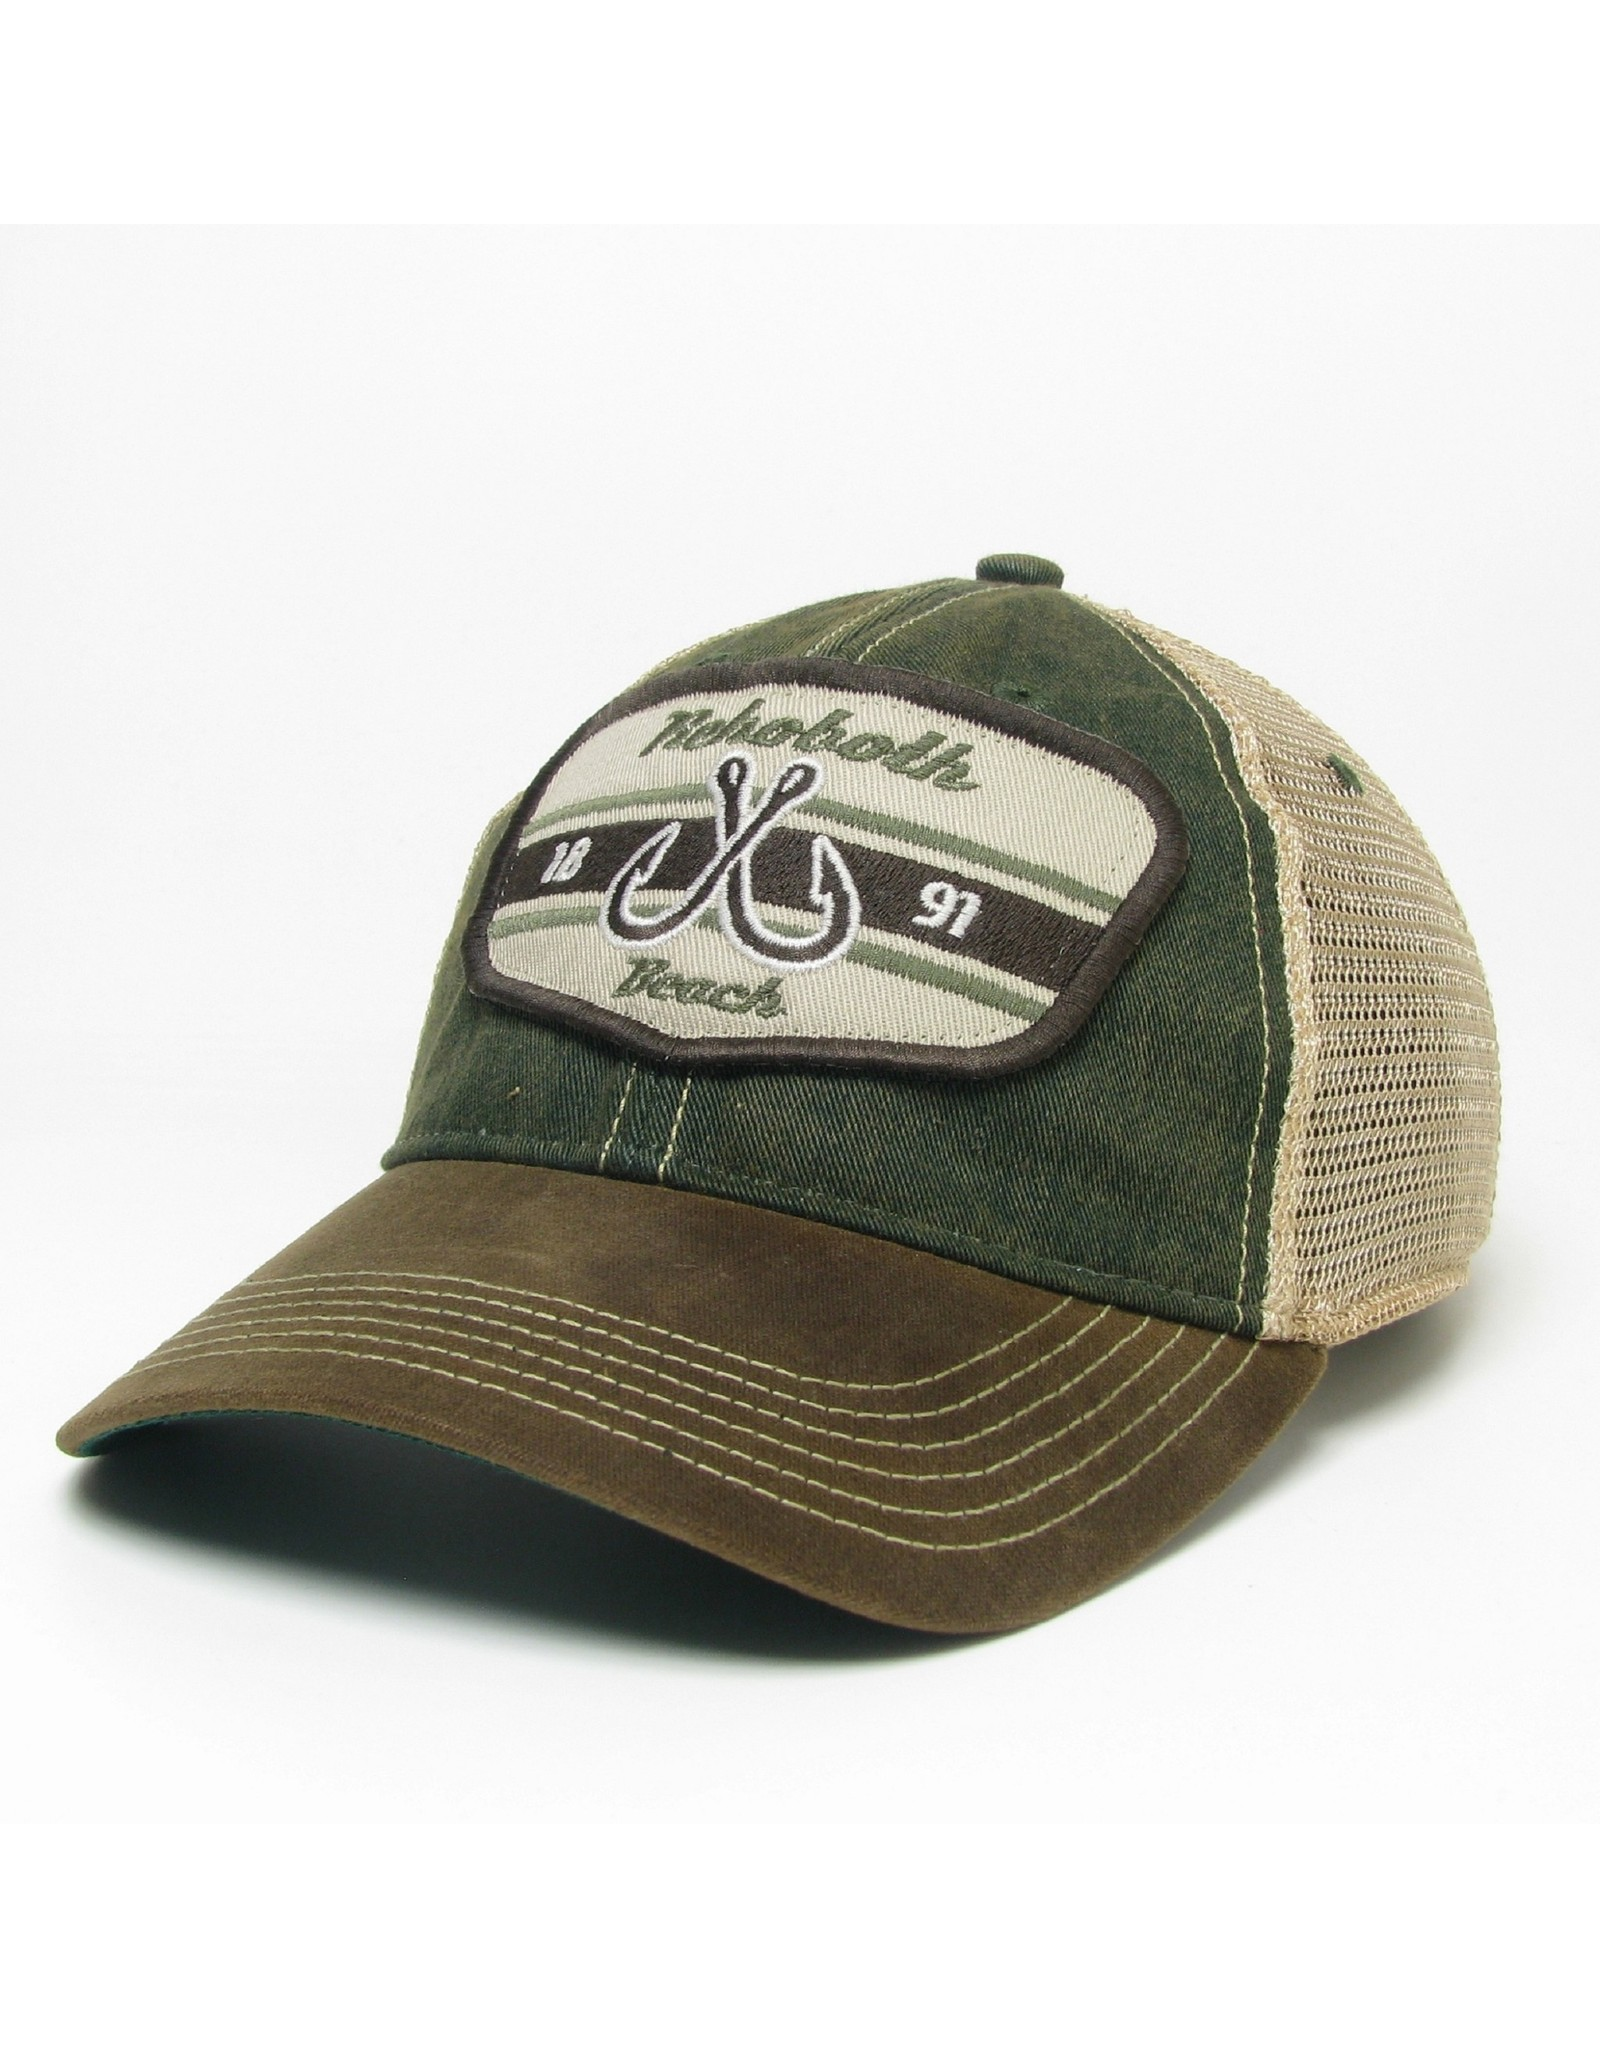 LEGACY ATHLETICS LEGACY OLD FAVORITE WAXED TRUCKER HAT